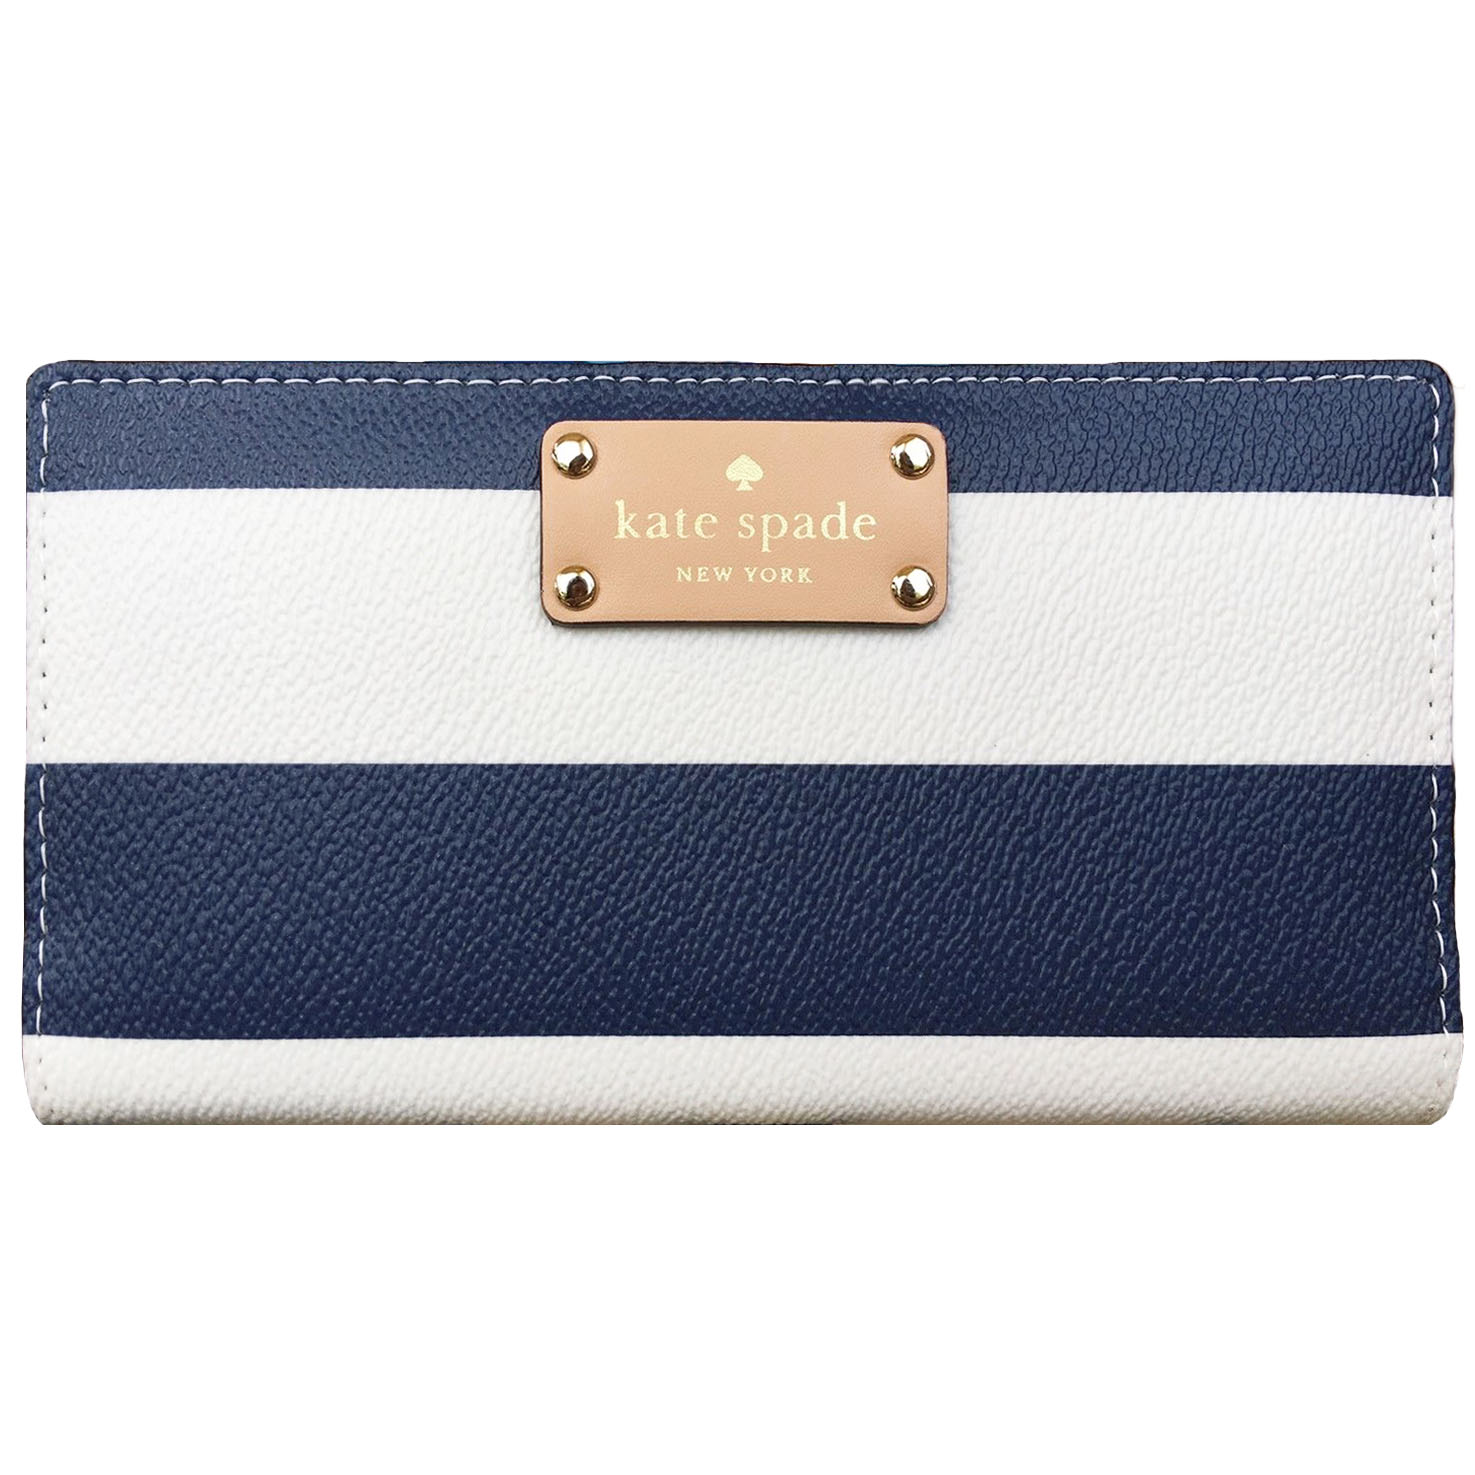 Kate Spade Wellesley Printed Stacy Navy / Cream Stripe # WLRU2531